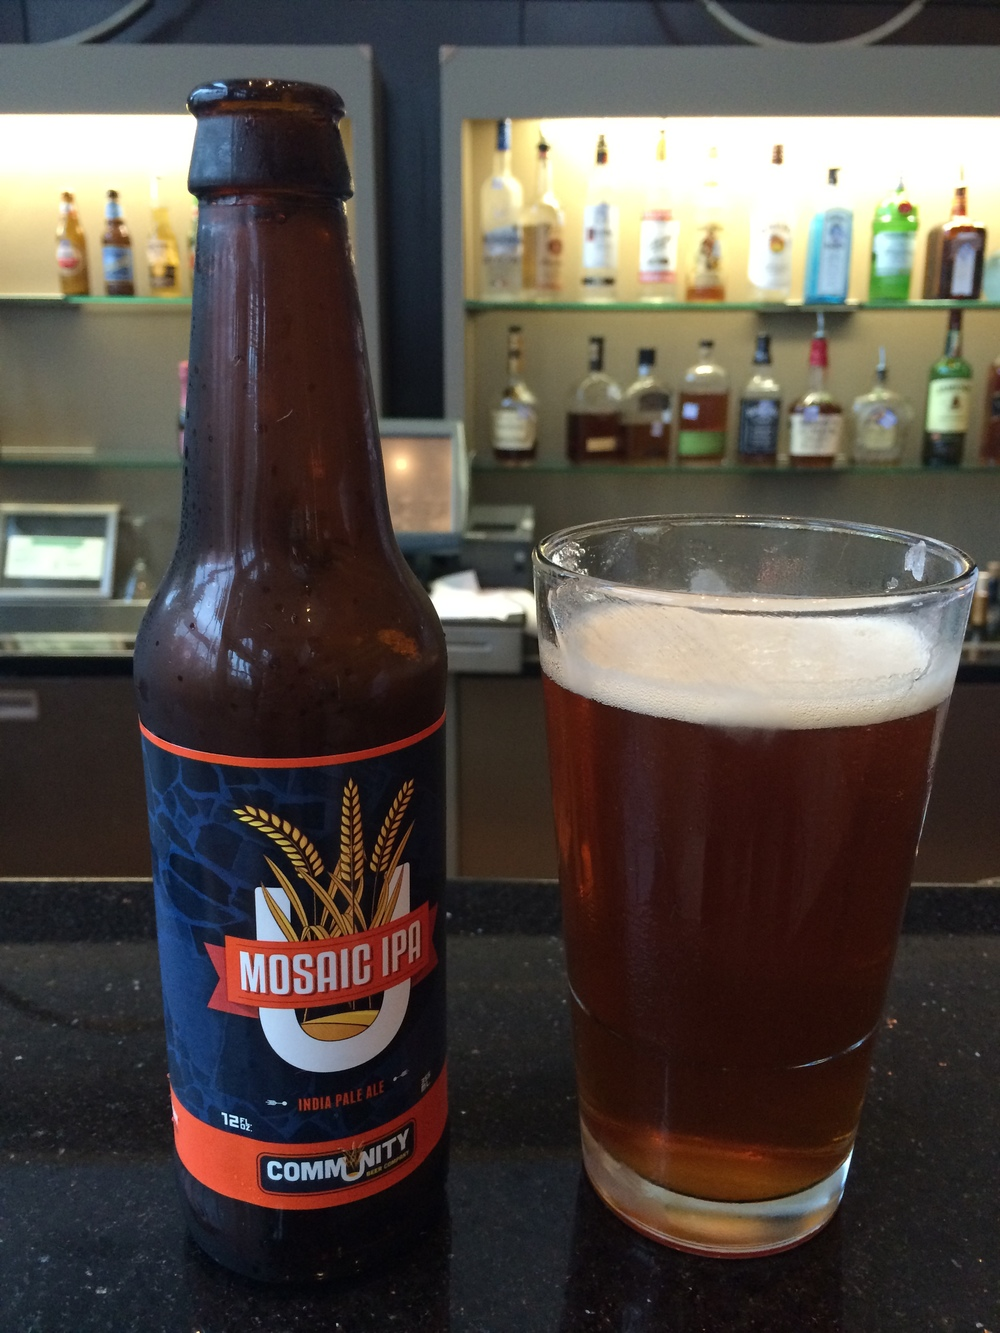 Community Beer Co.'s Mosaic IPA